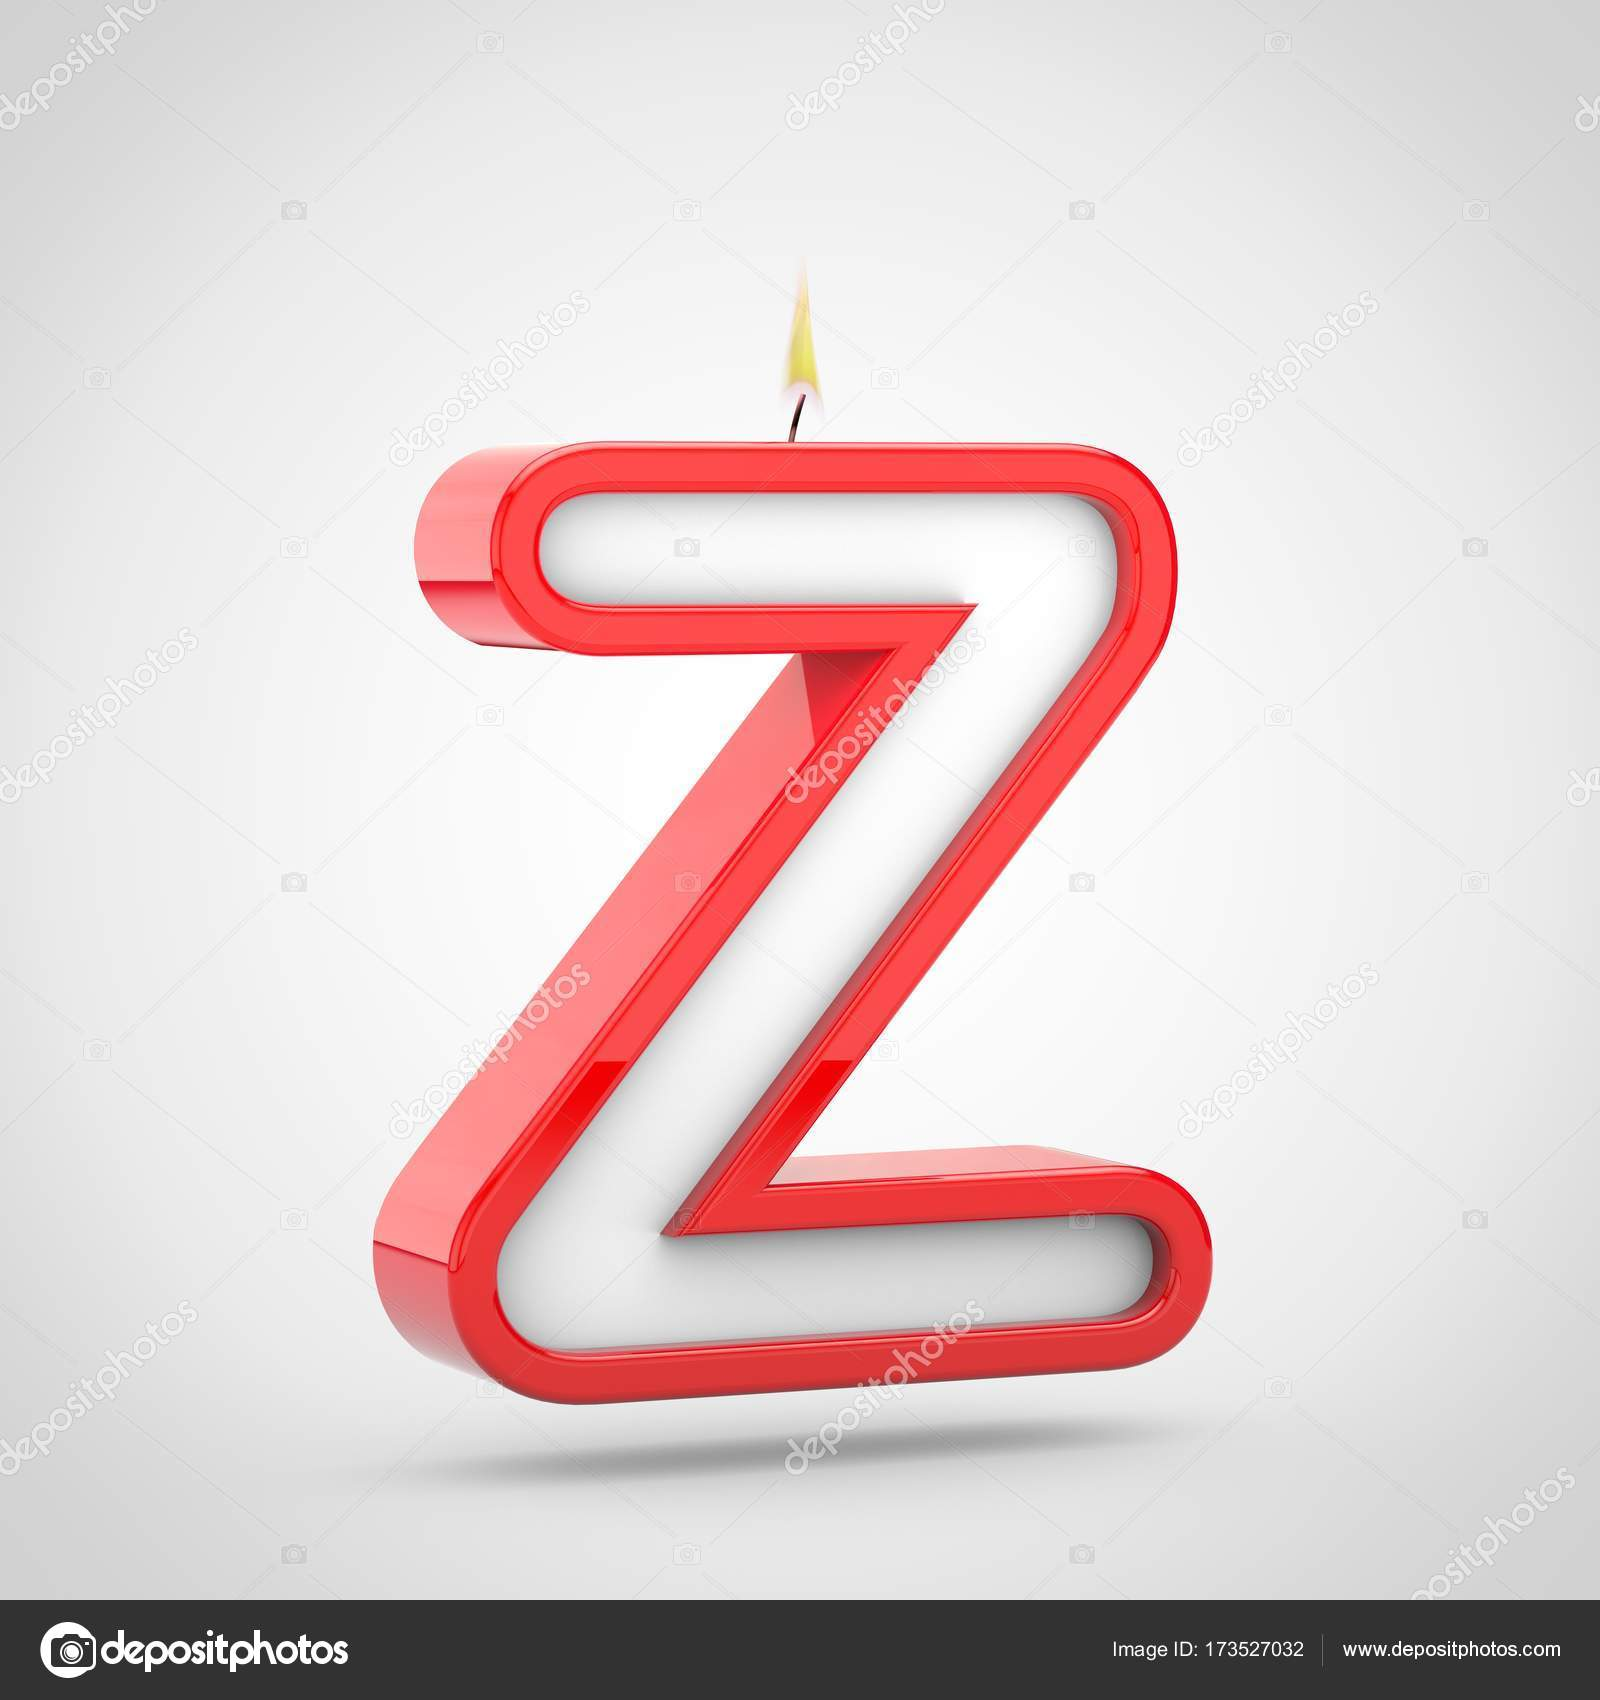 3D Render Of Birthday Candle Letter Z Uppercase With Wick And Flame Isolated On White Background Photo By Whitebarbie